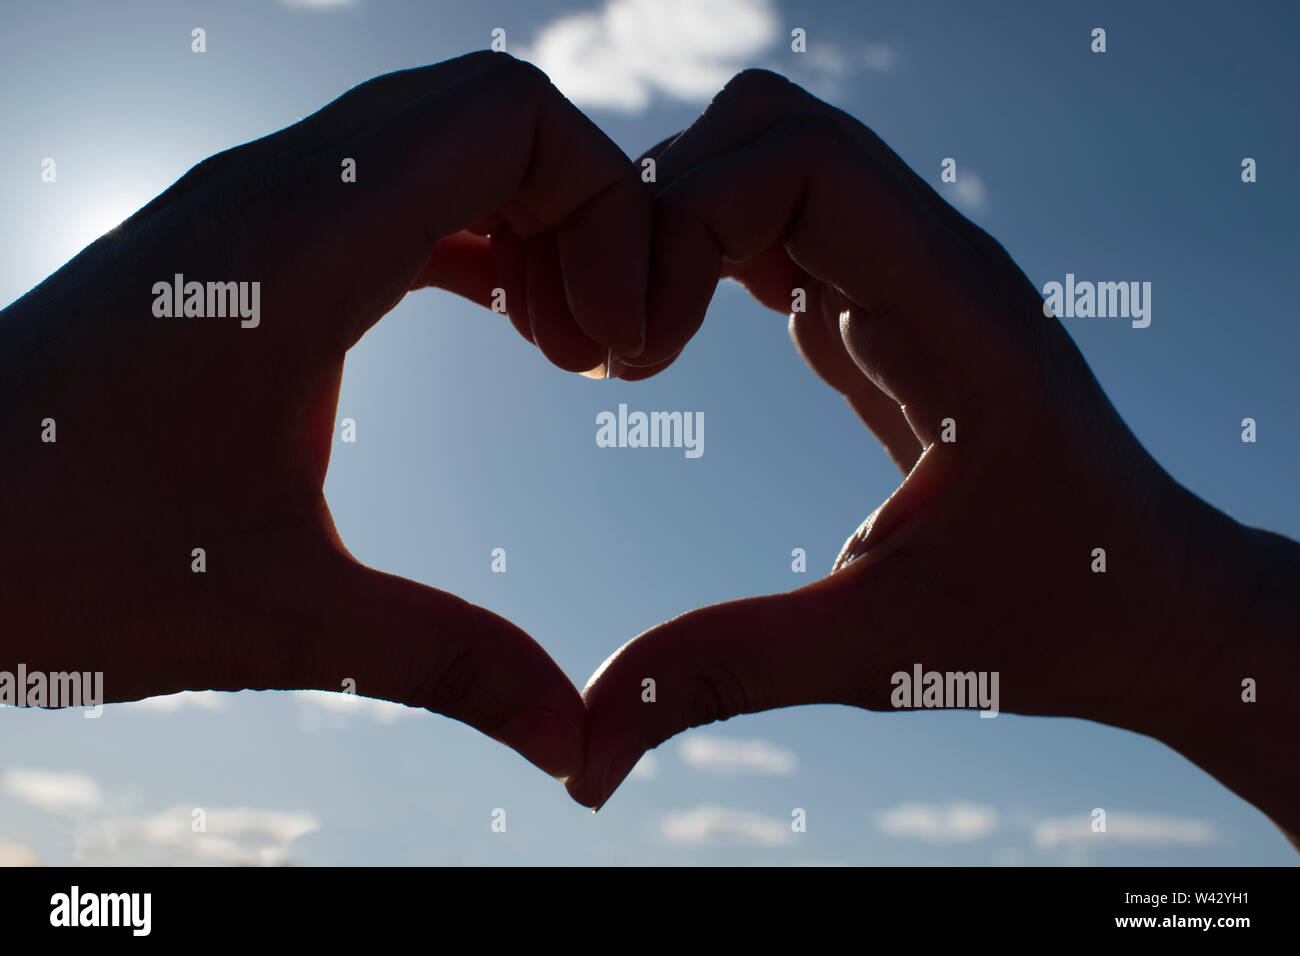 Sunset in heart hands on sky - Stock Image